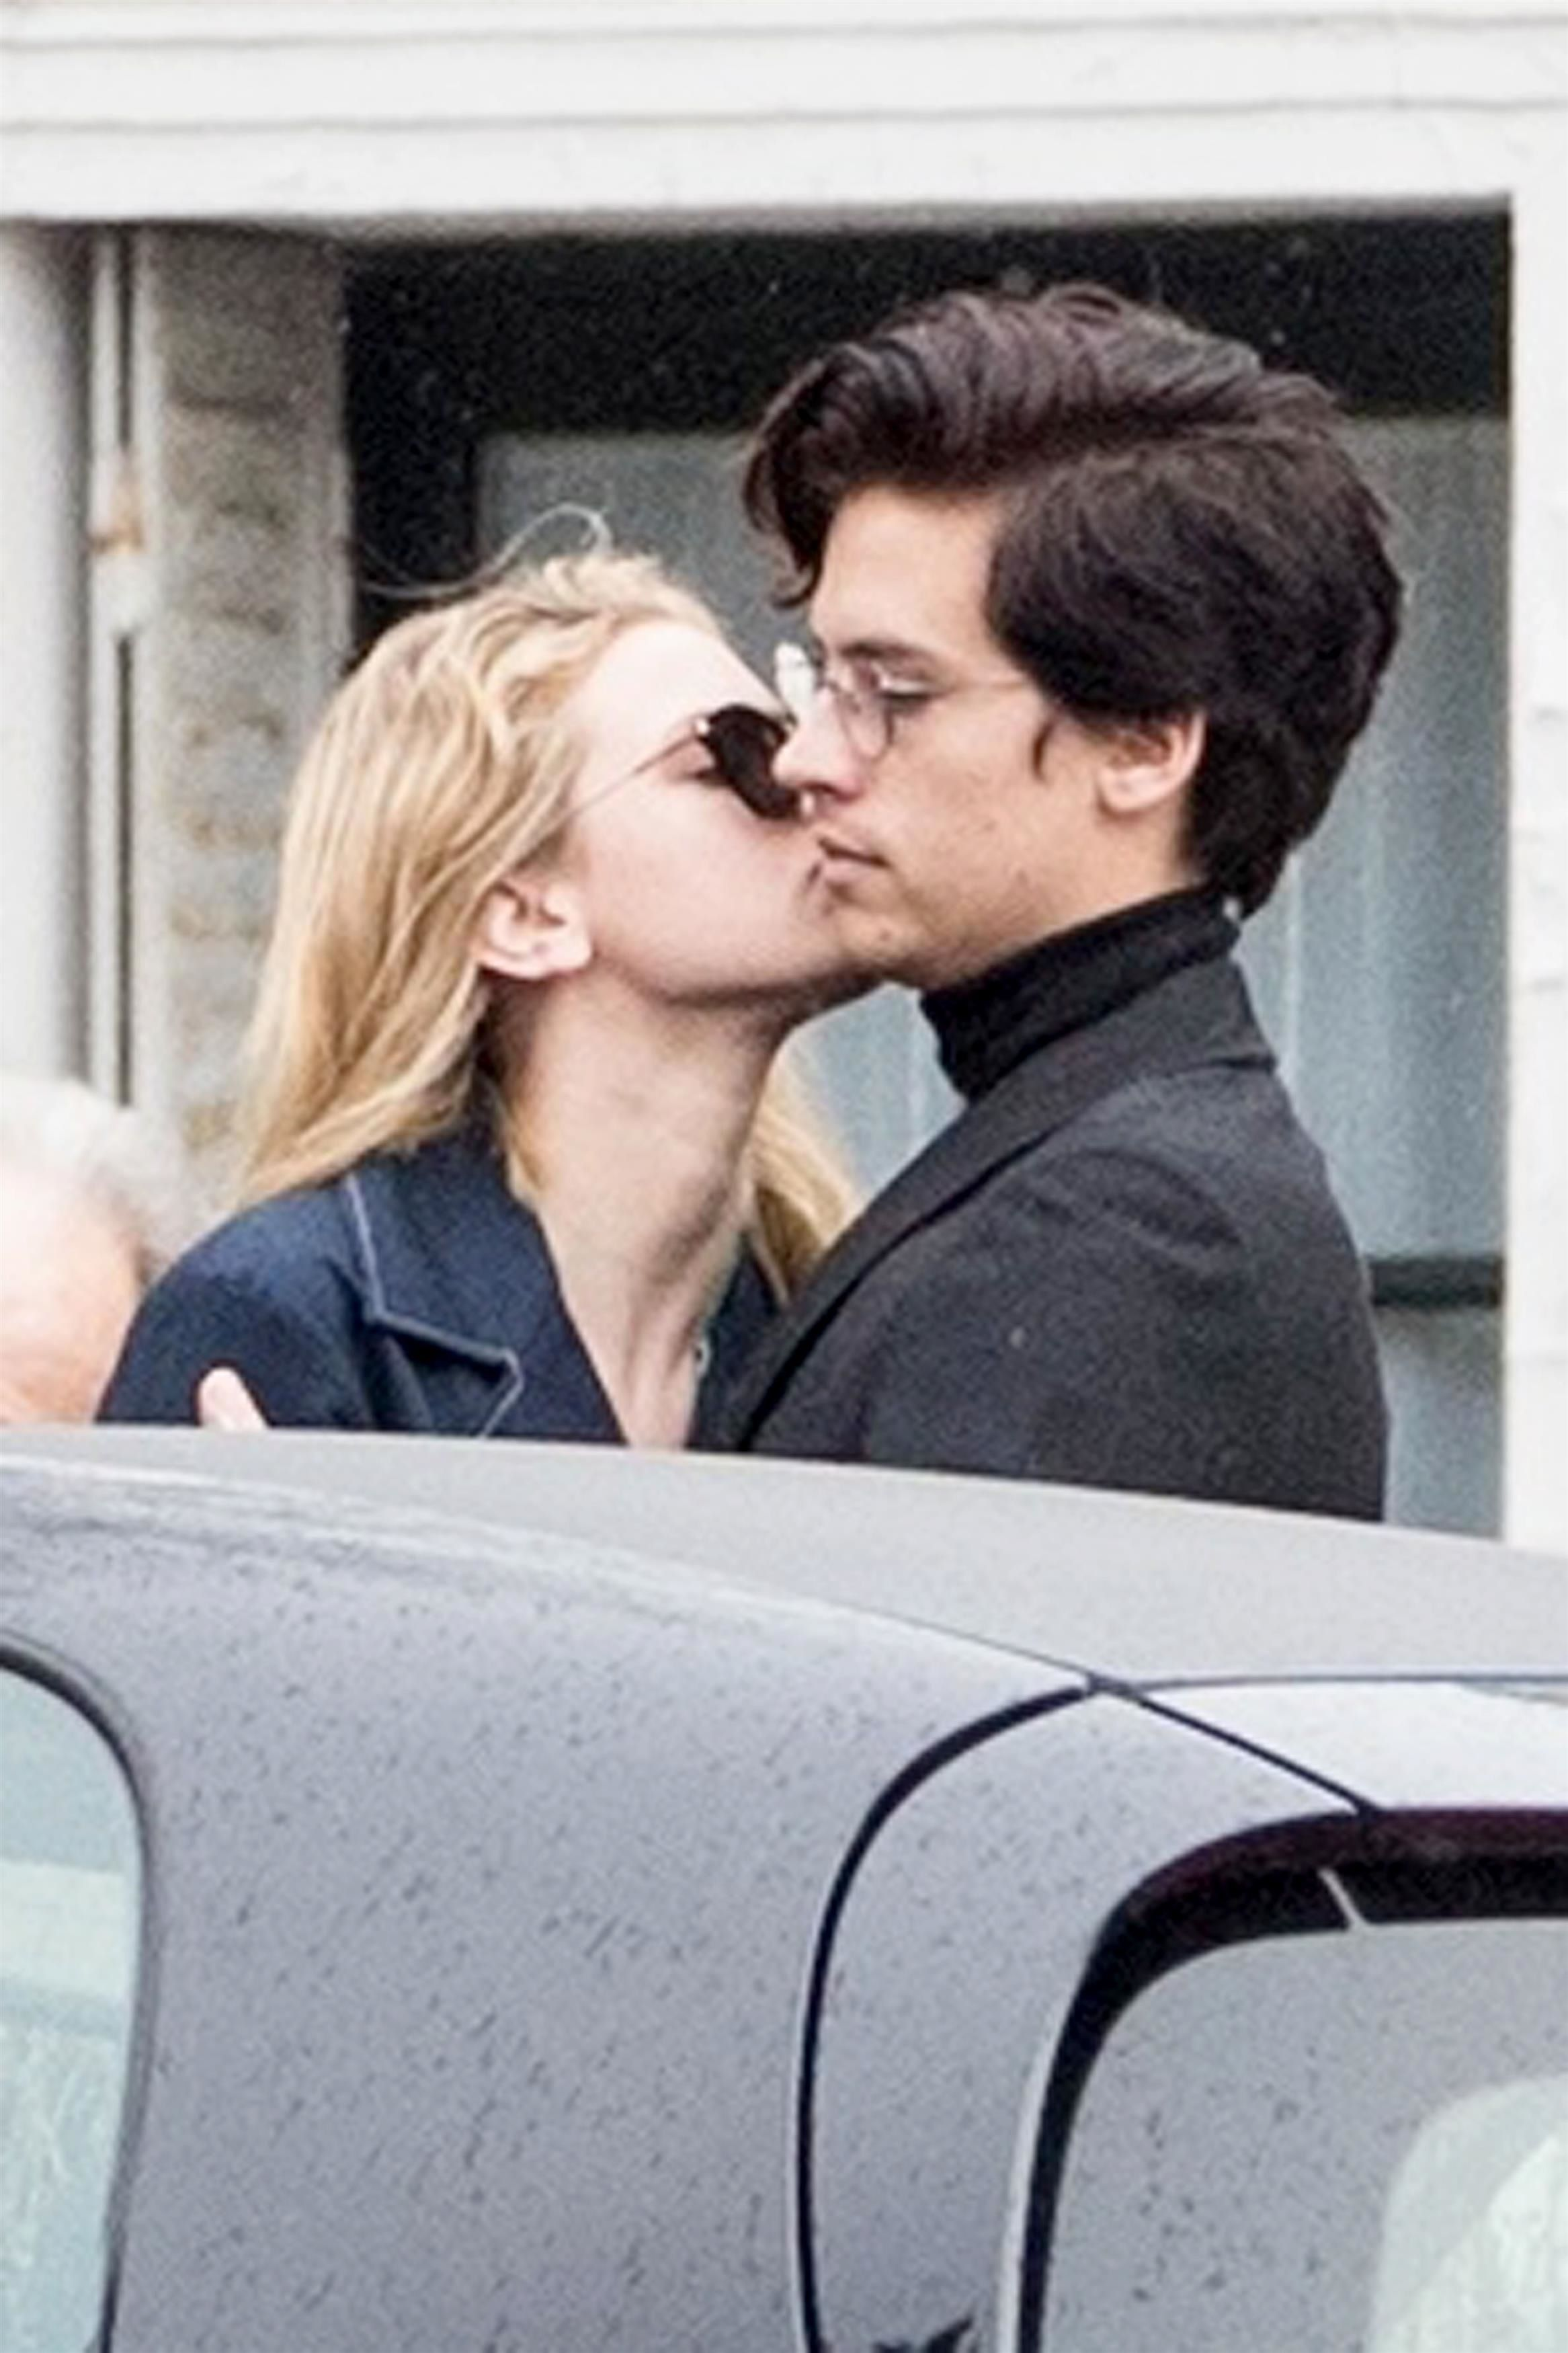 Lili Reinhart and Cole Sprouse in Paris